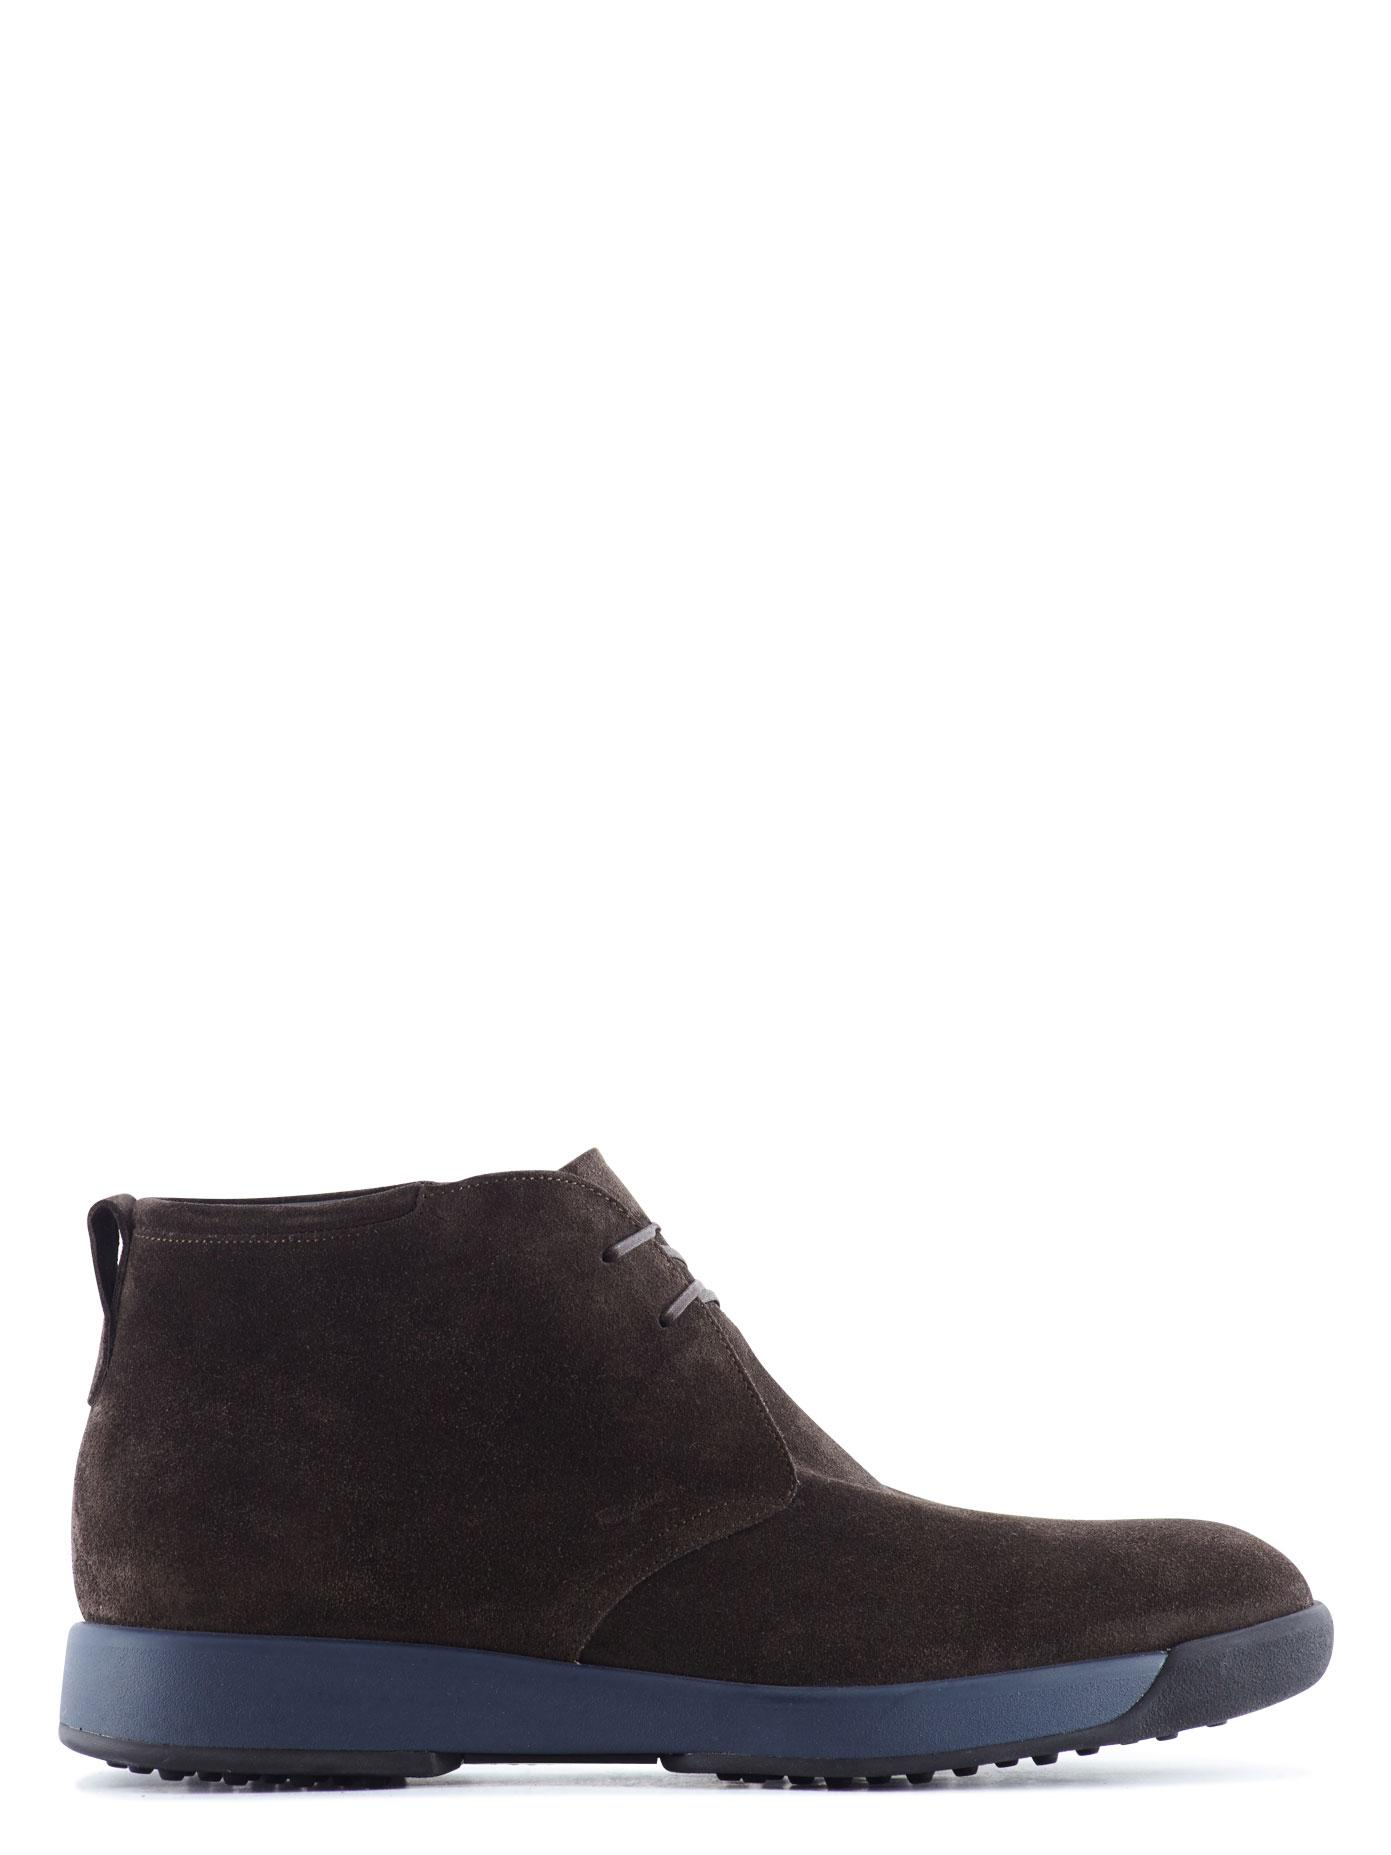 Reiss Brown Chunky Heel Shoes